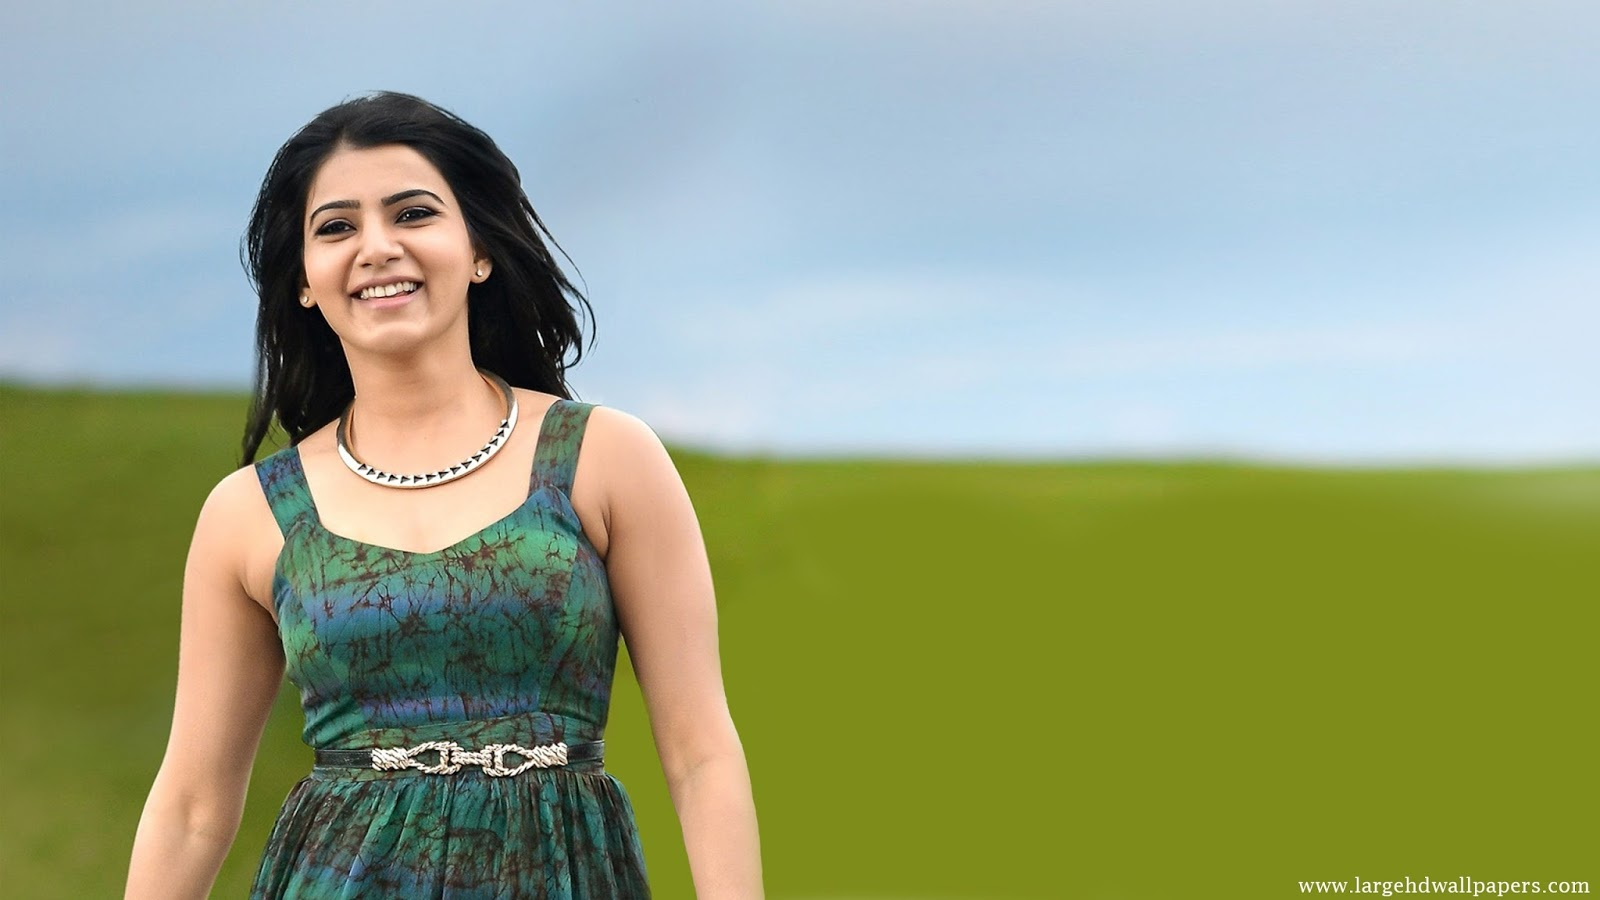 samantha hd wallpapers - hd wallpapers download